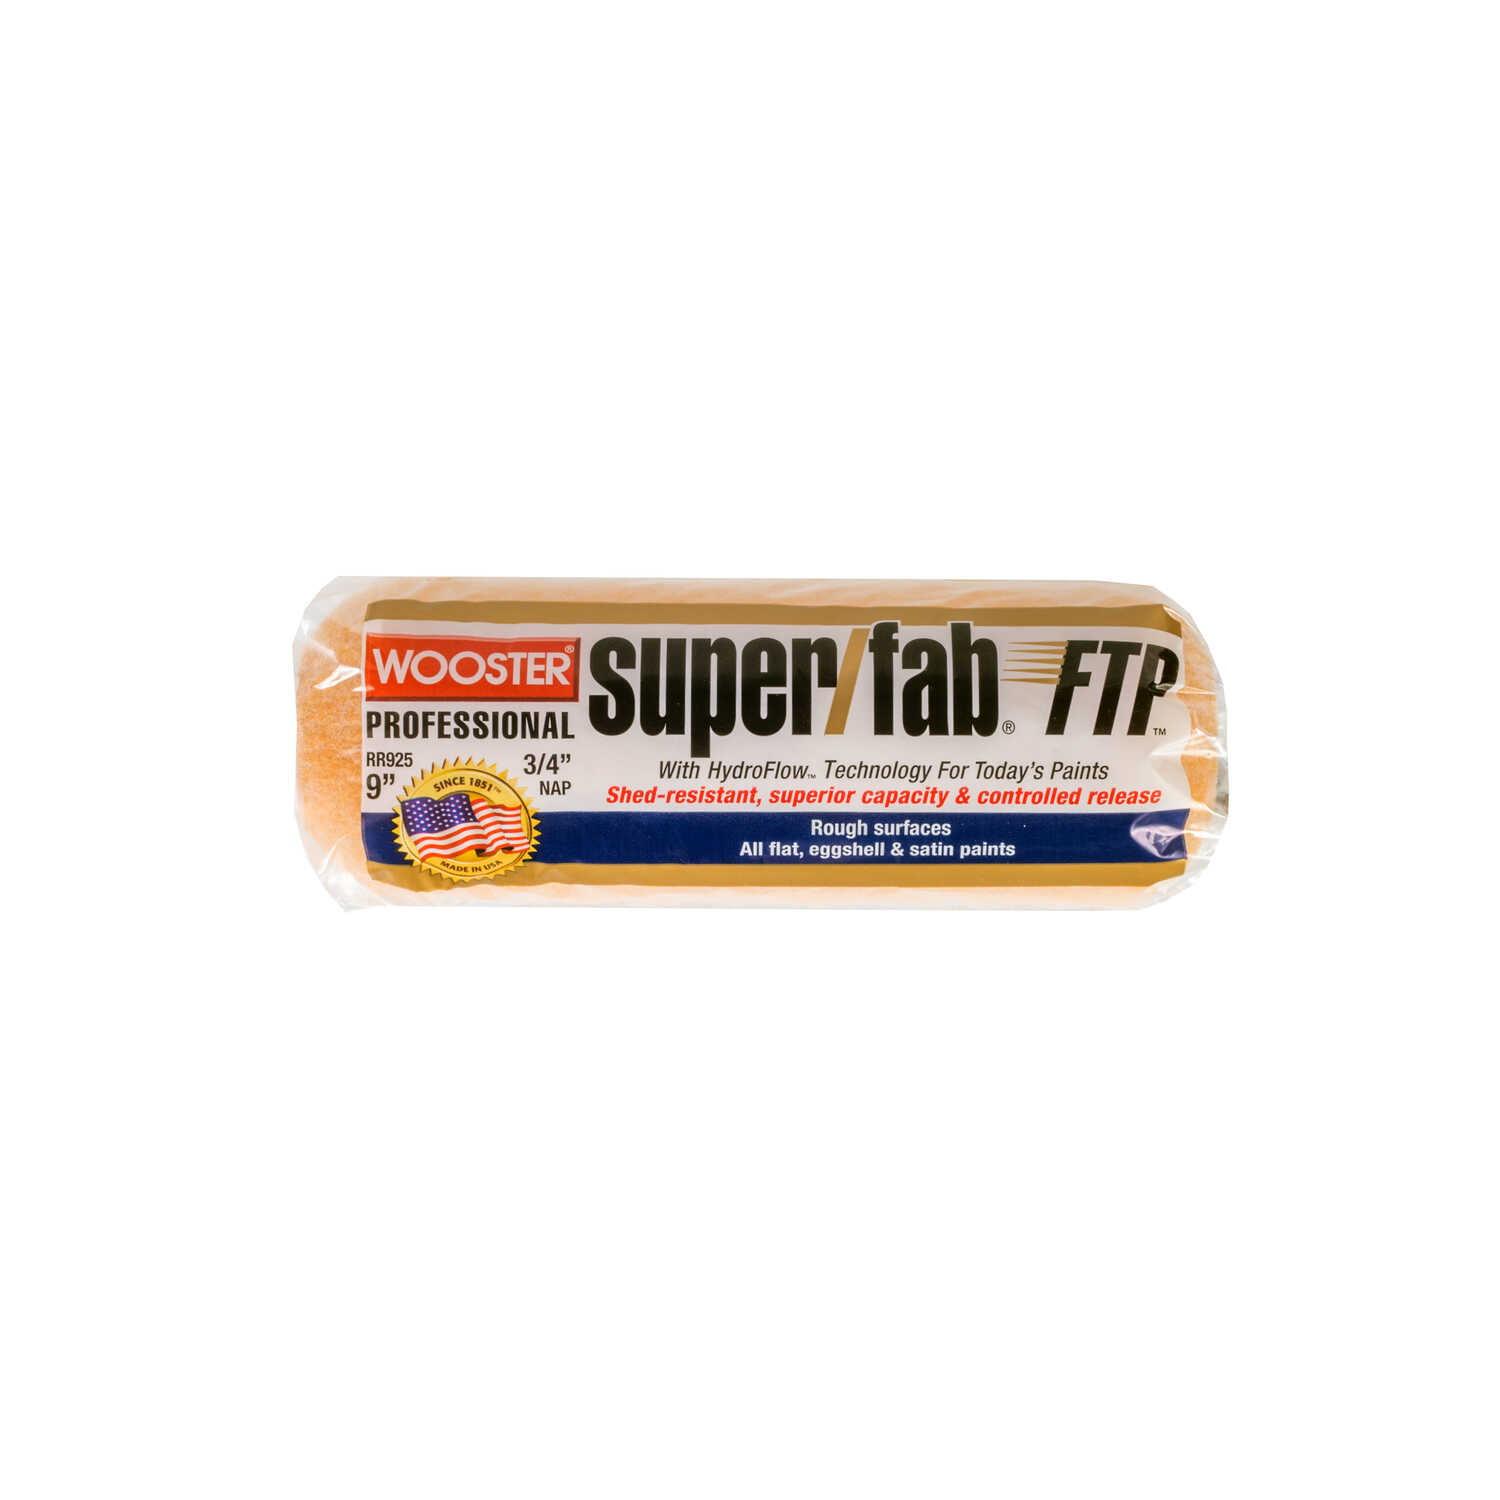 Wooster  Super/Fab FTP  Synthetic Blend  3/4 in.  x 9 in. W Paint Roller Cover  For Rough Surfaces 1